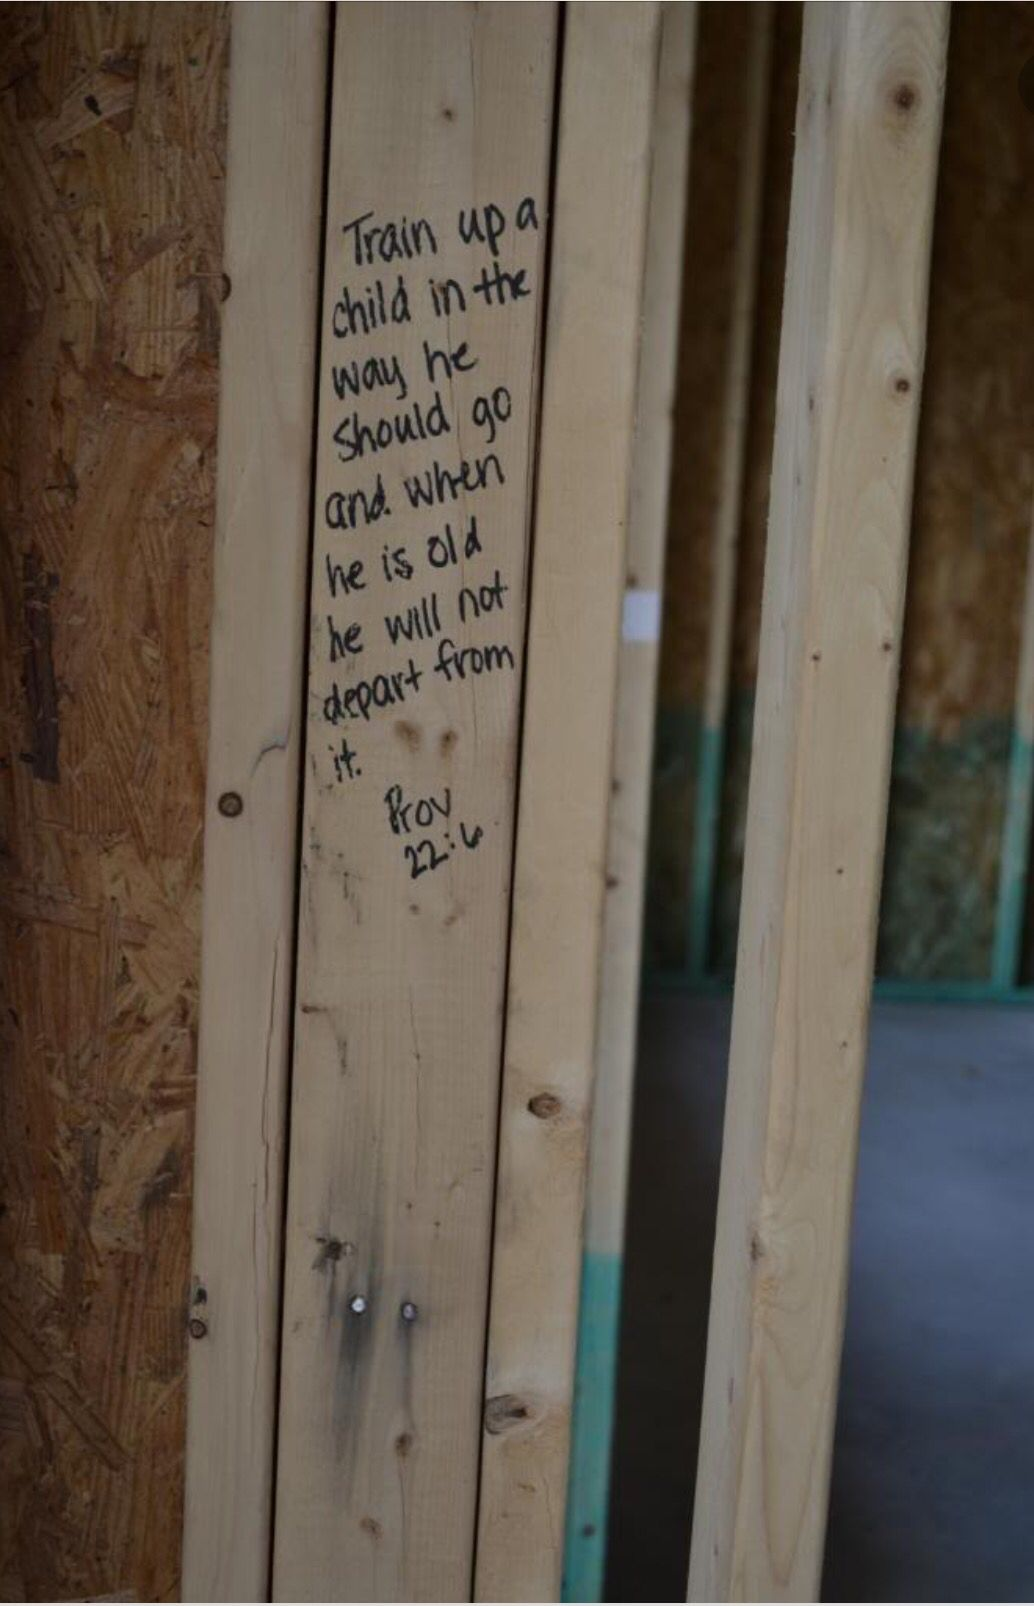 Bibles Verses To Write On New Construction Walls House Blessing New Home Quotes Wall Writing